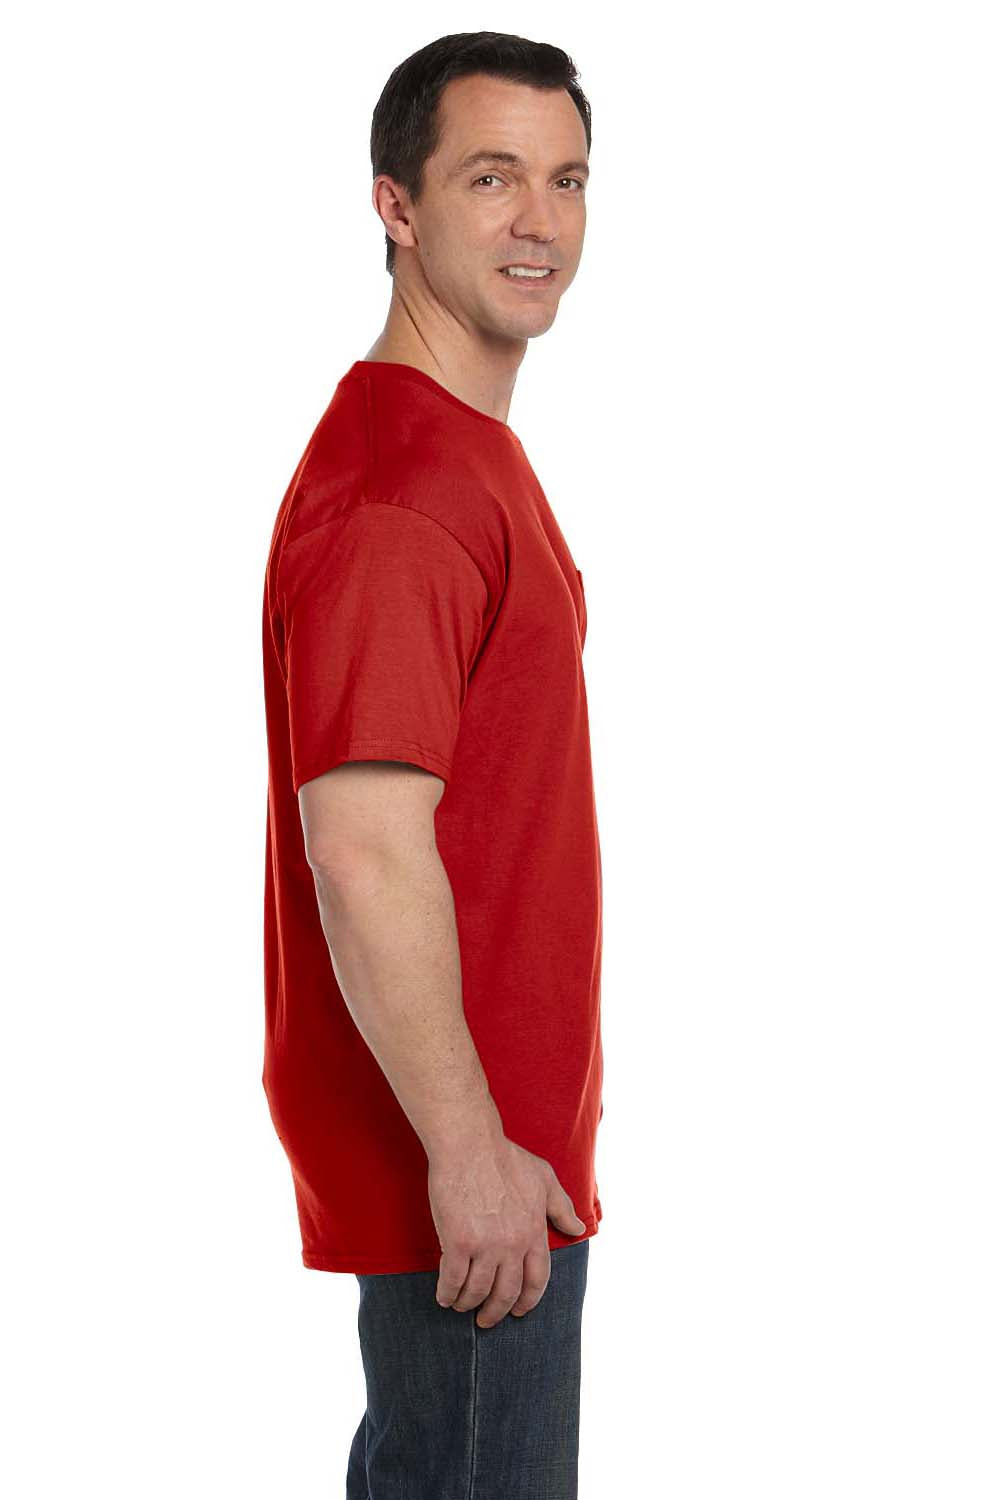 Hanes 5190P Mens Beefy-T Short Sleeve Crewneck T-Shirt w/ Pocket Red Side